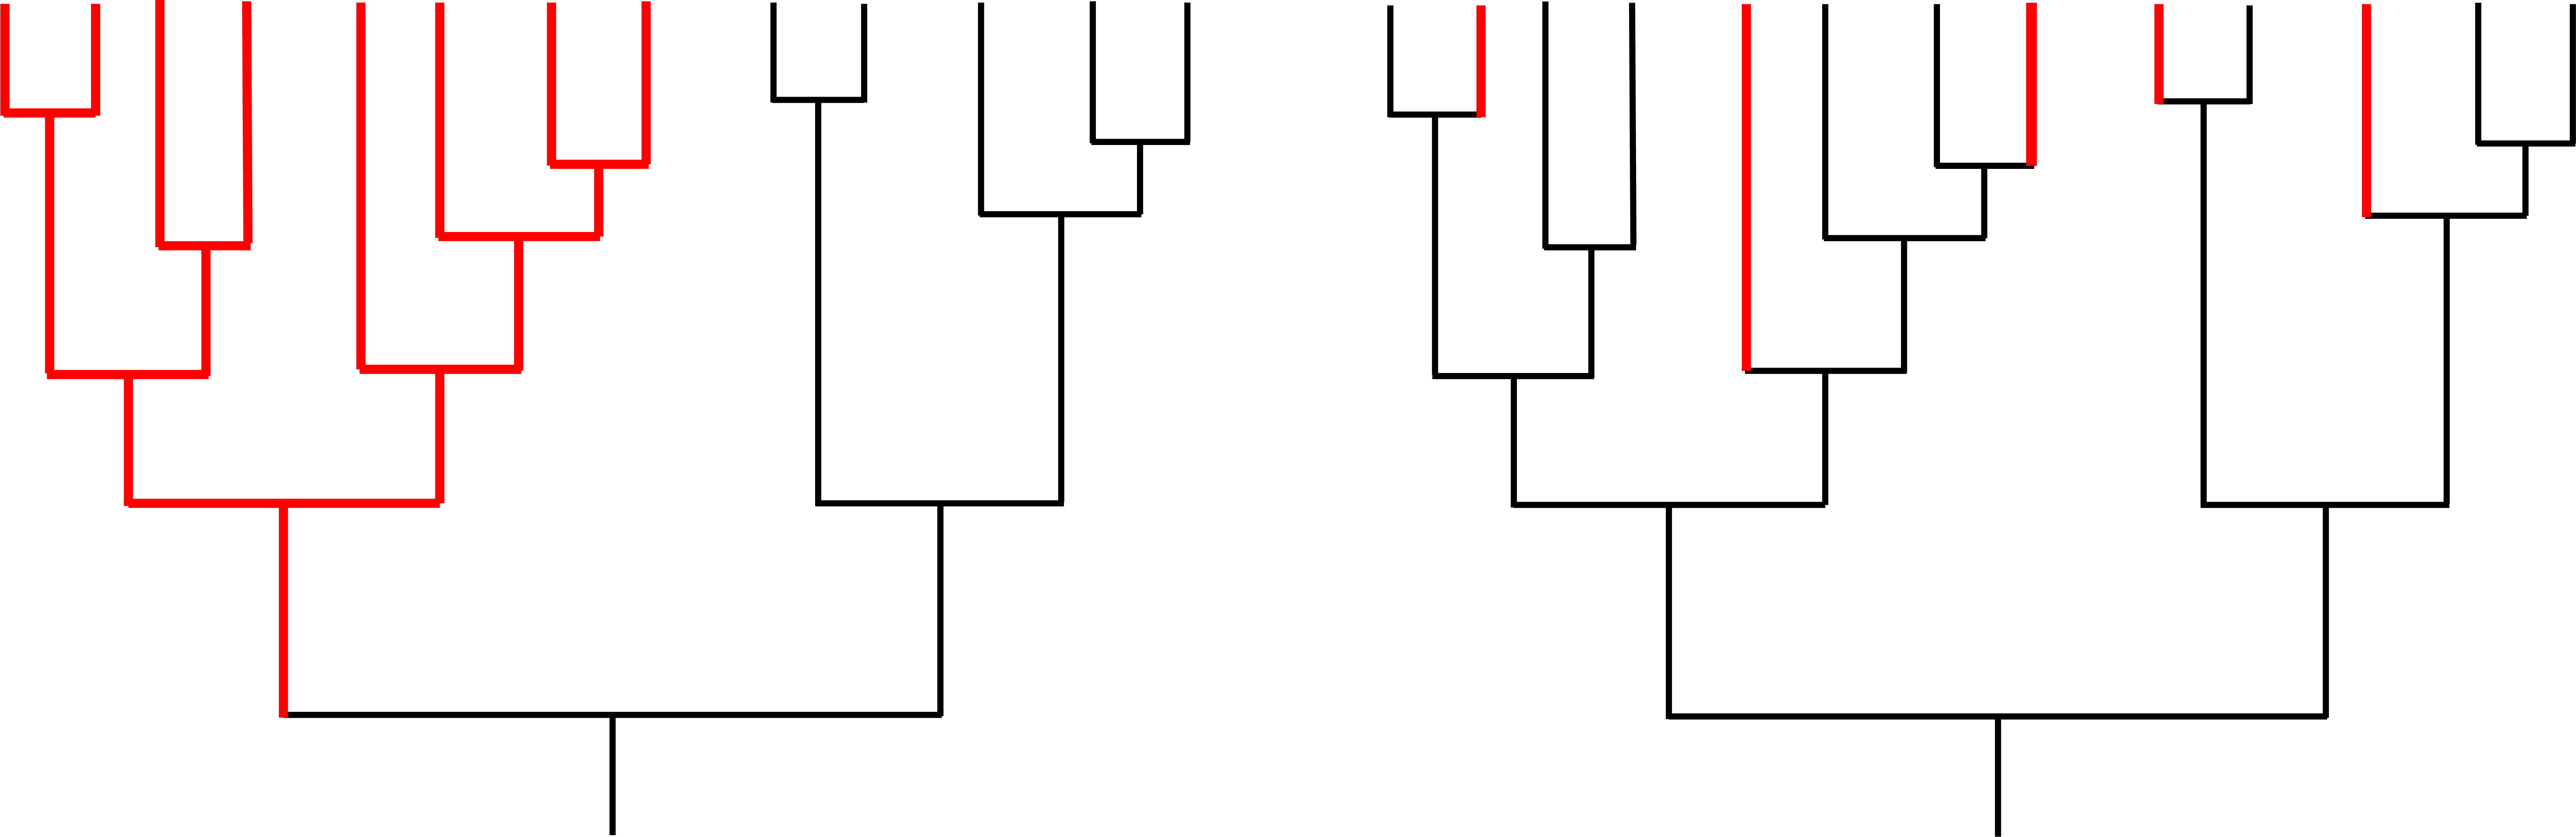 Two hypothetical examples of diversification in a group of closely related species. Black indicates presence of the ancestral condition (e.g., planktotrophic development); red indicates presence of a derived condition (e.g., nonplanktotrophic development). In the example on the left, the origin of the derived condition has caused an increased rate of speciation within a single clade, providing evidence for species selection. In the example on the right, the derived condition has originated multiple times, but there is no evidence that the origin of the trait has increased the speciation rate; therefore, there is not any evidence for species selection. Image based in part on fig. 1 in Duda and Palumbi (1999).